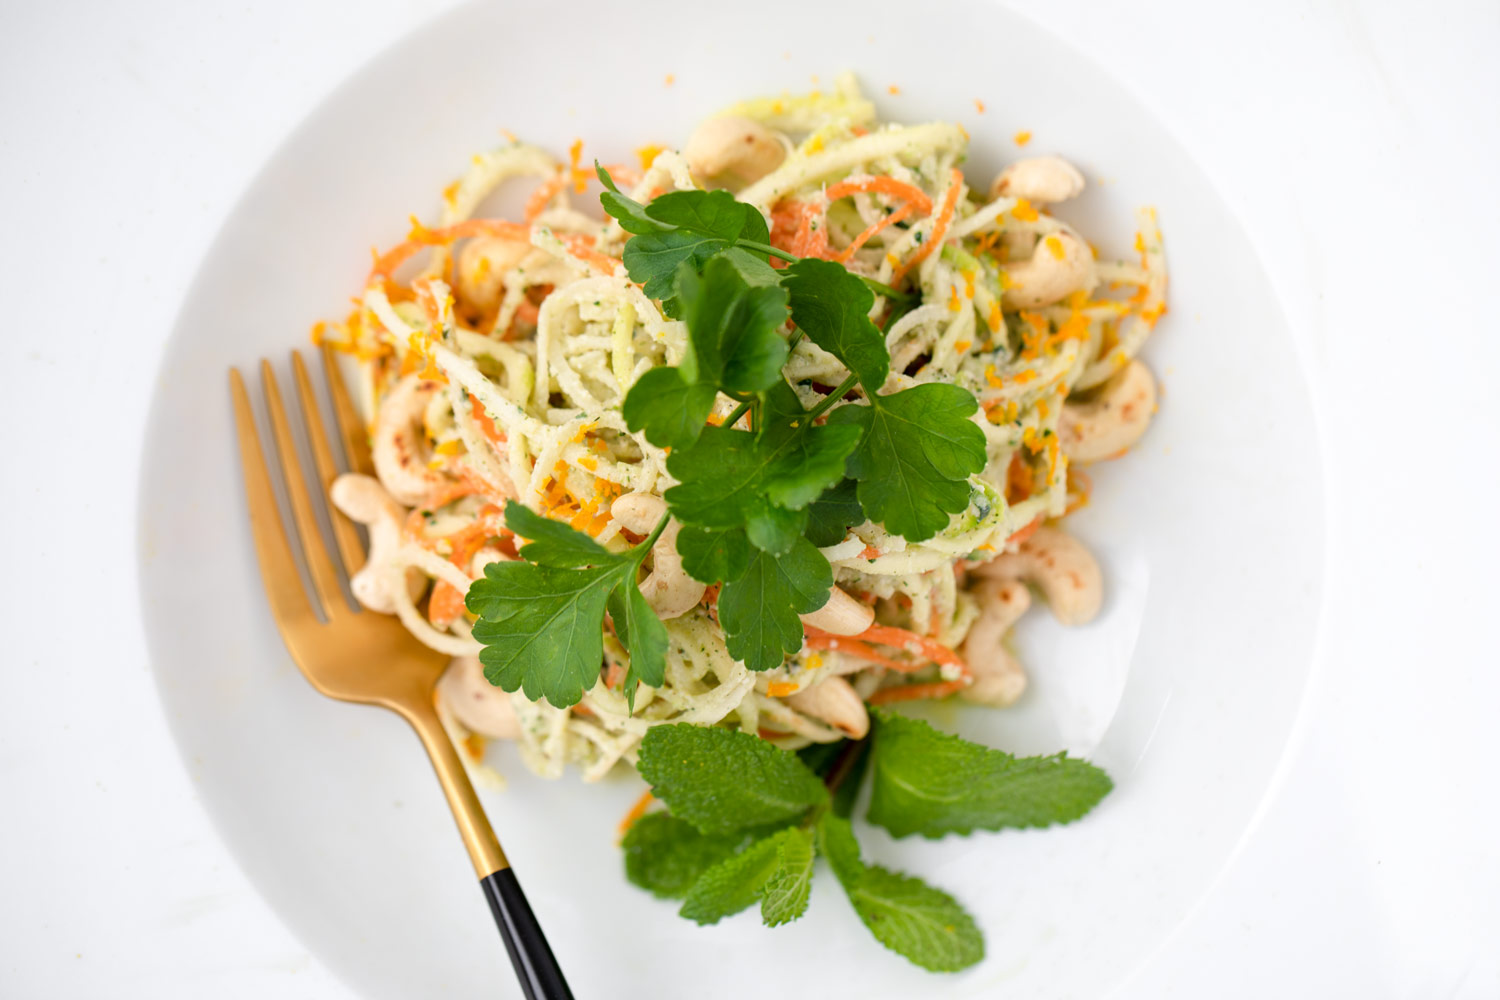 Raw Noodles with carrot, zucchini and pear by Bakd&Raw - Karolin Baitinger